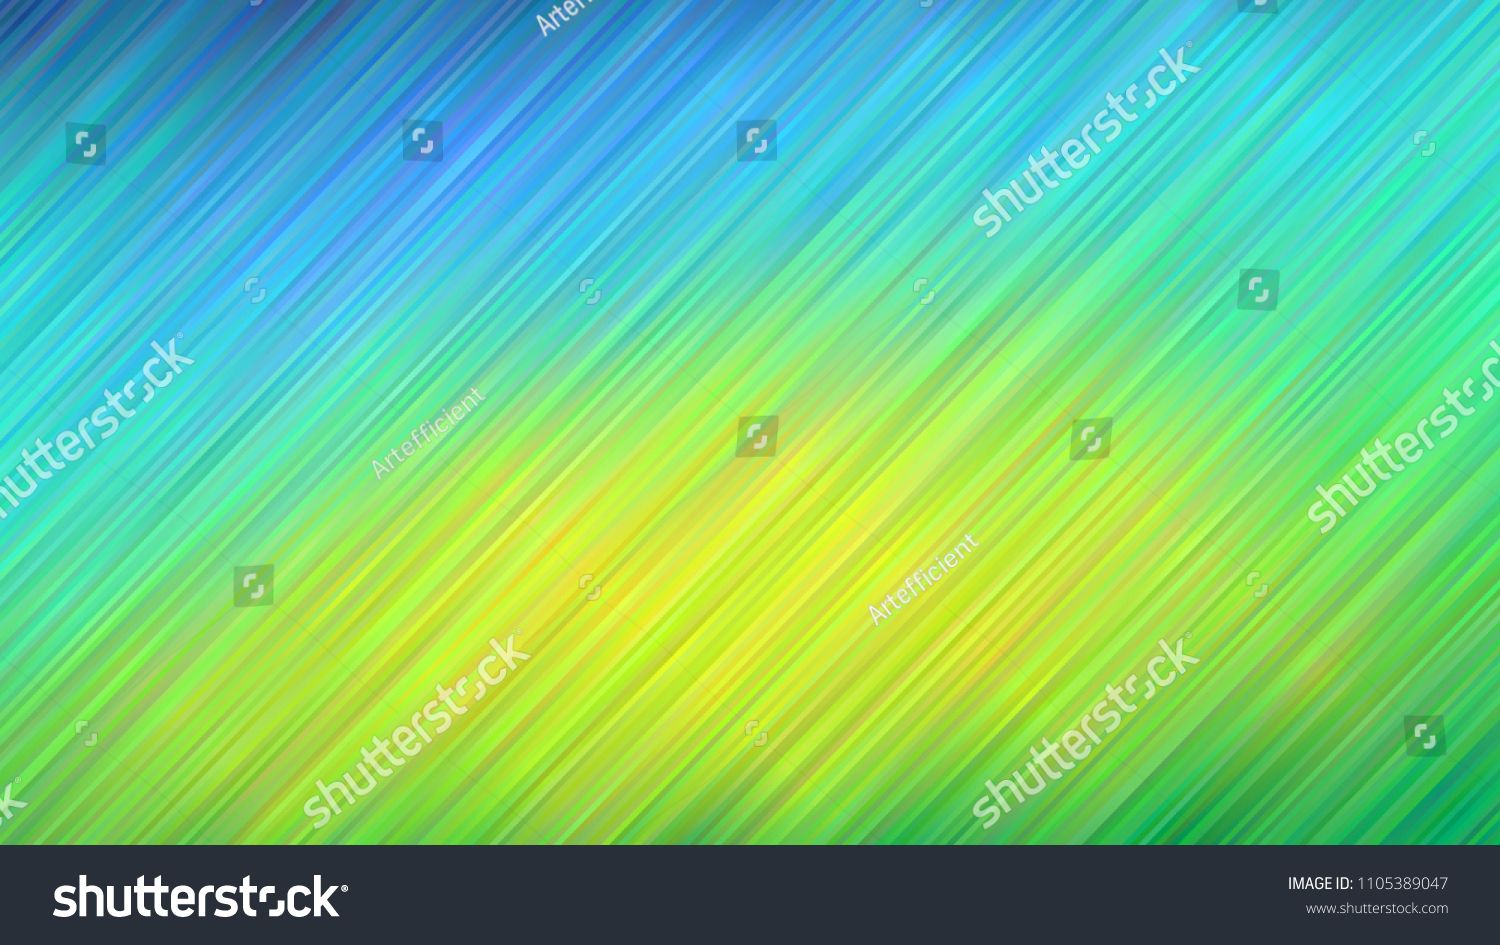 Blue to Lime Green Vivid Gradient Stripes Vector